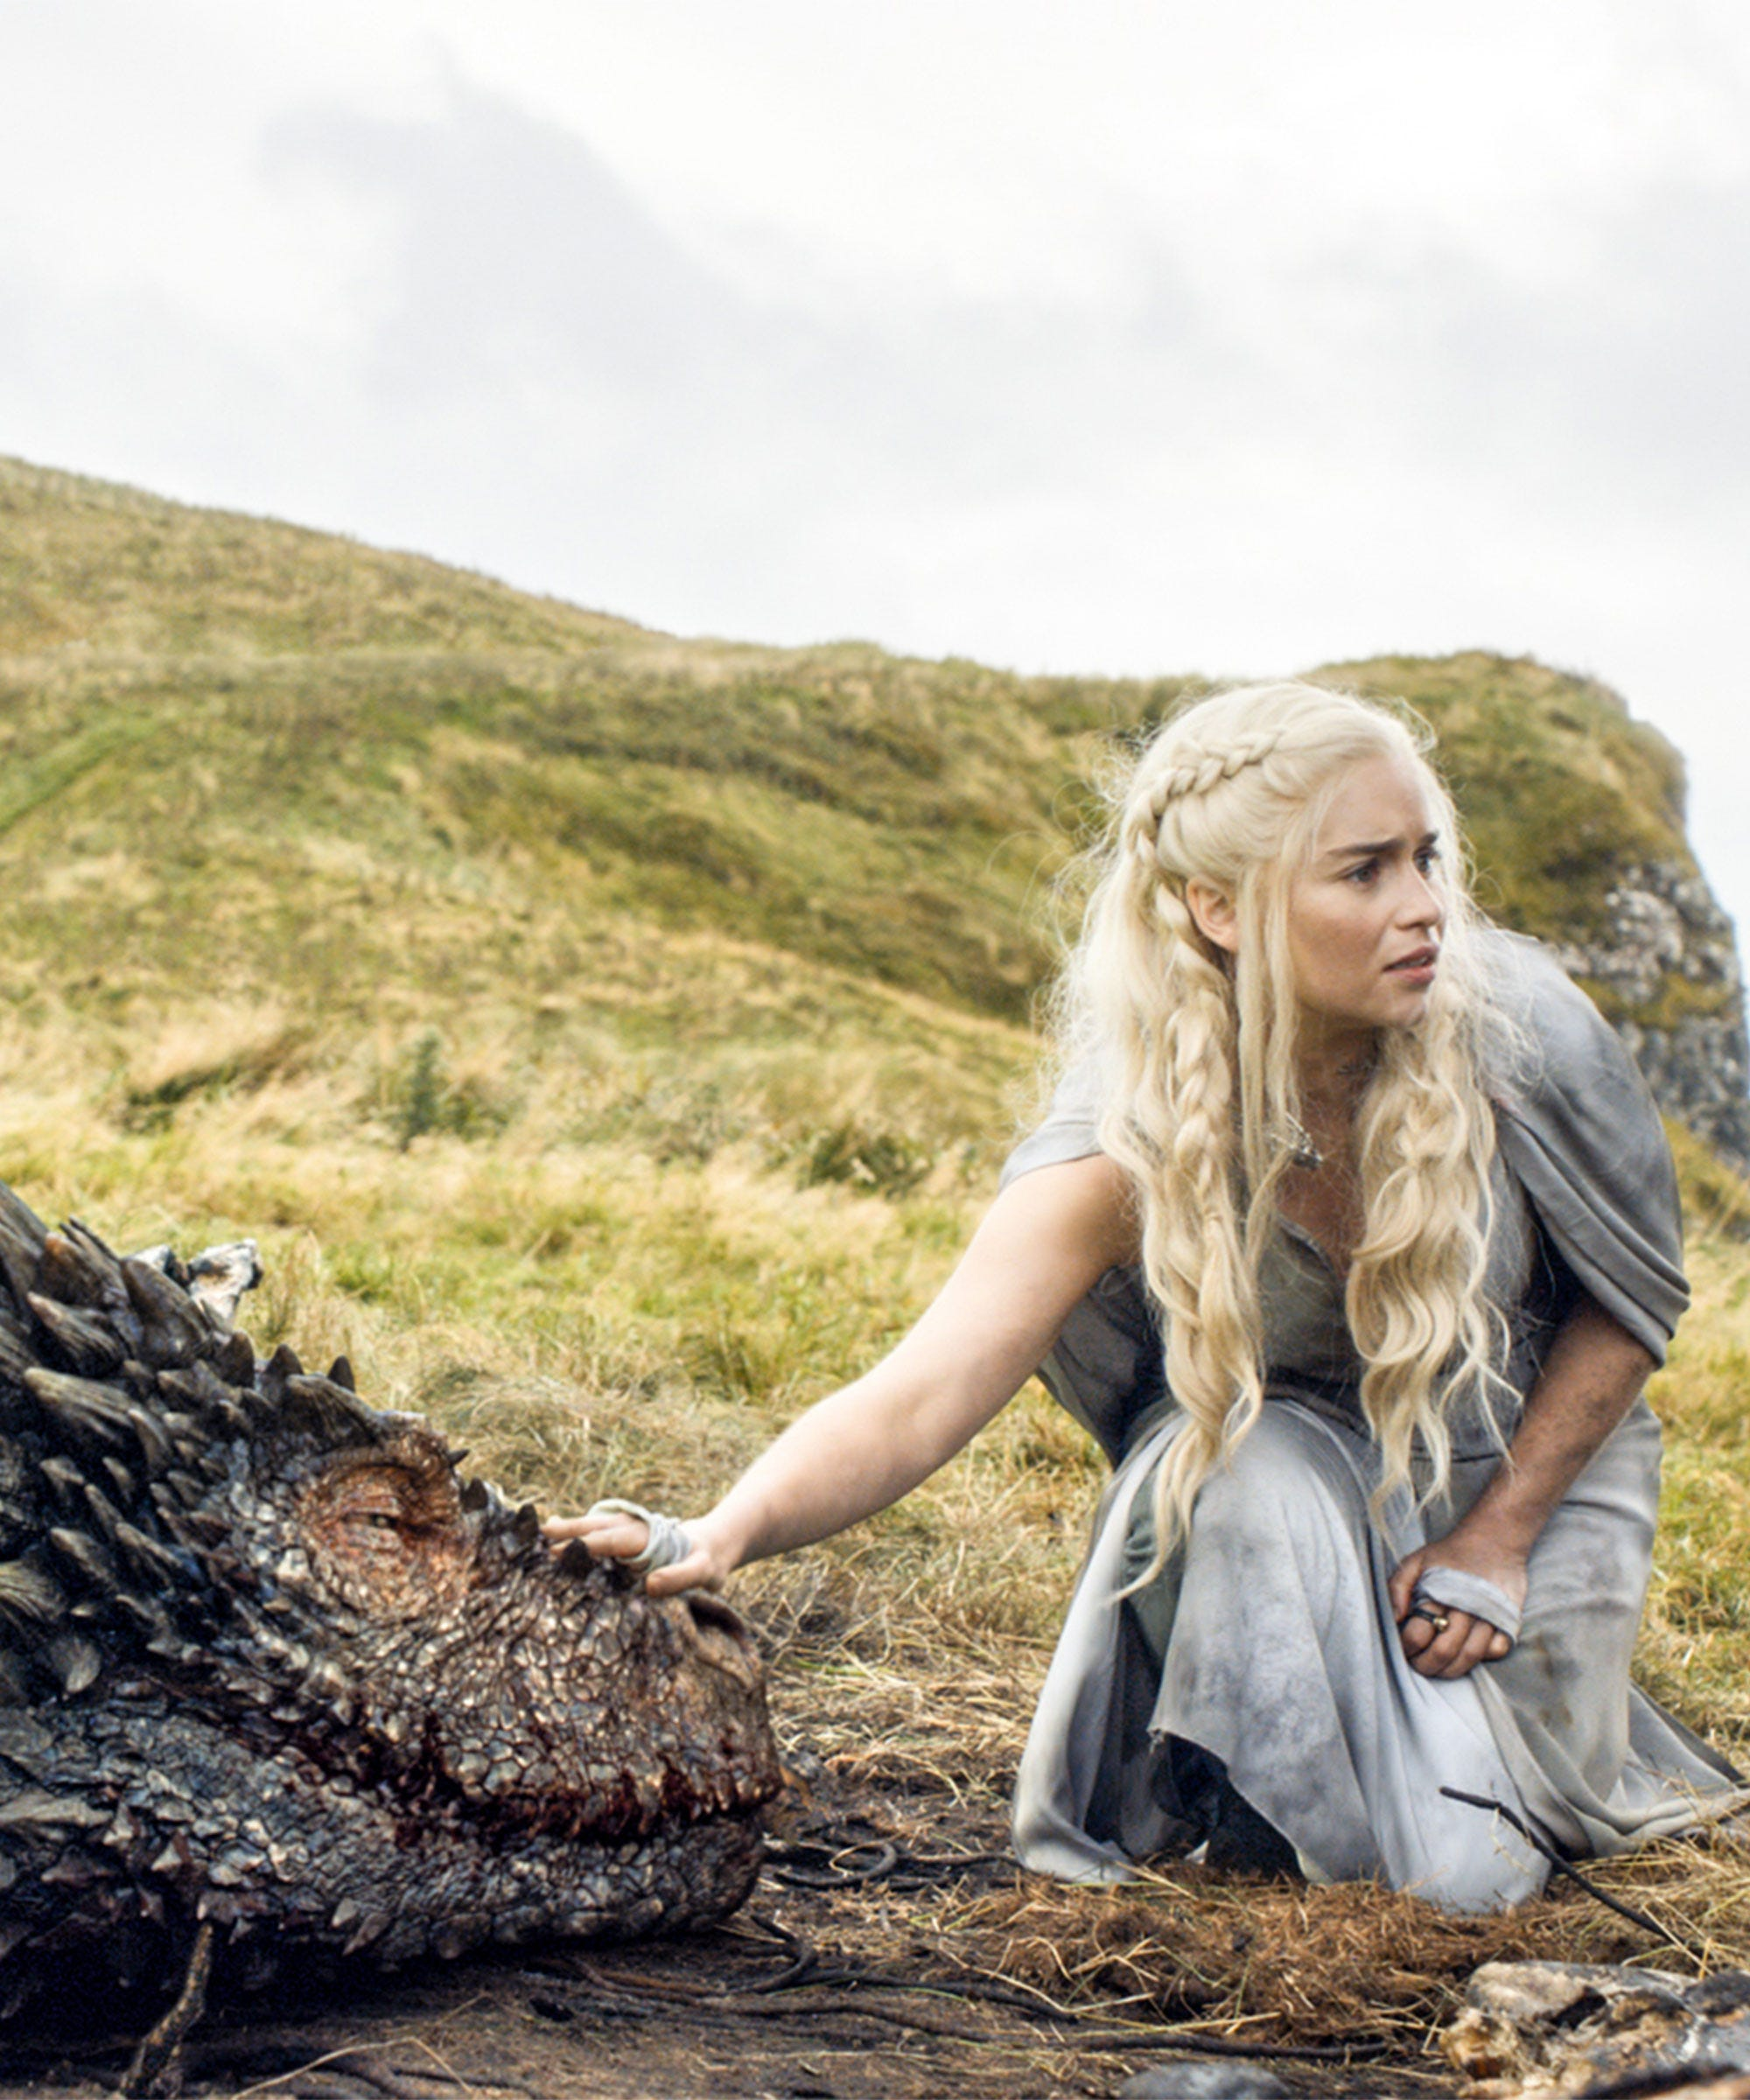 Game Of Thrones 3-Headed Dragon Meaning For Season 8